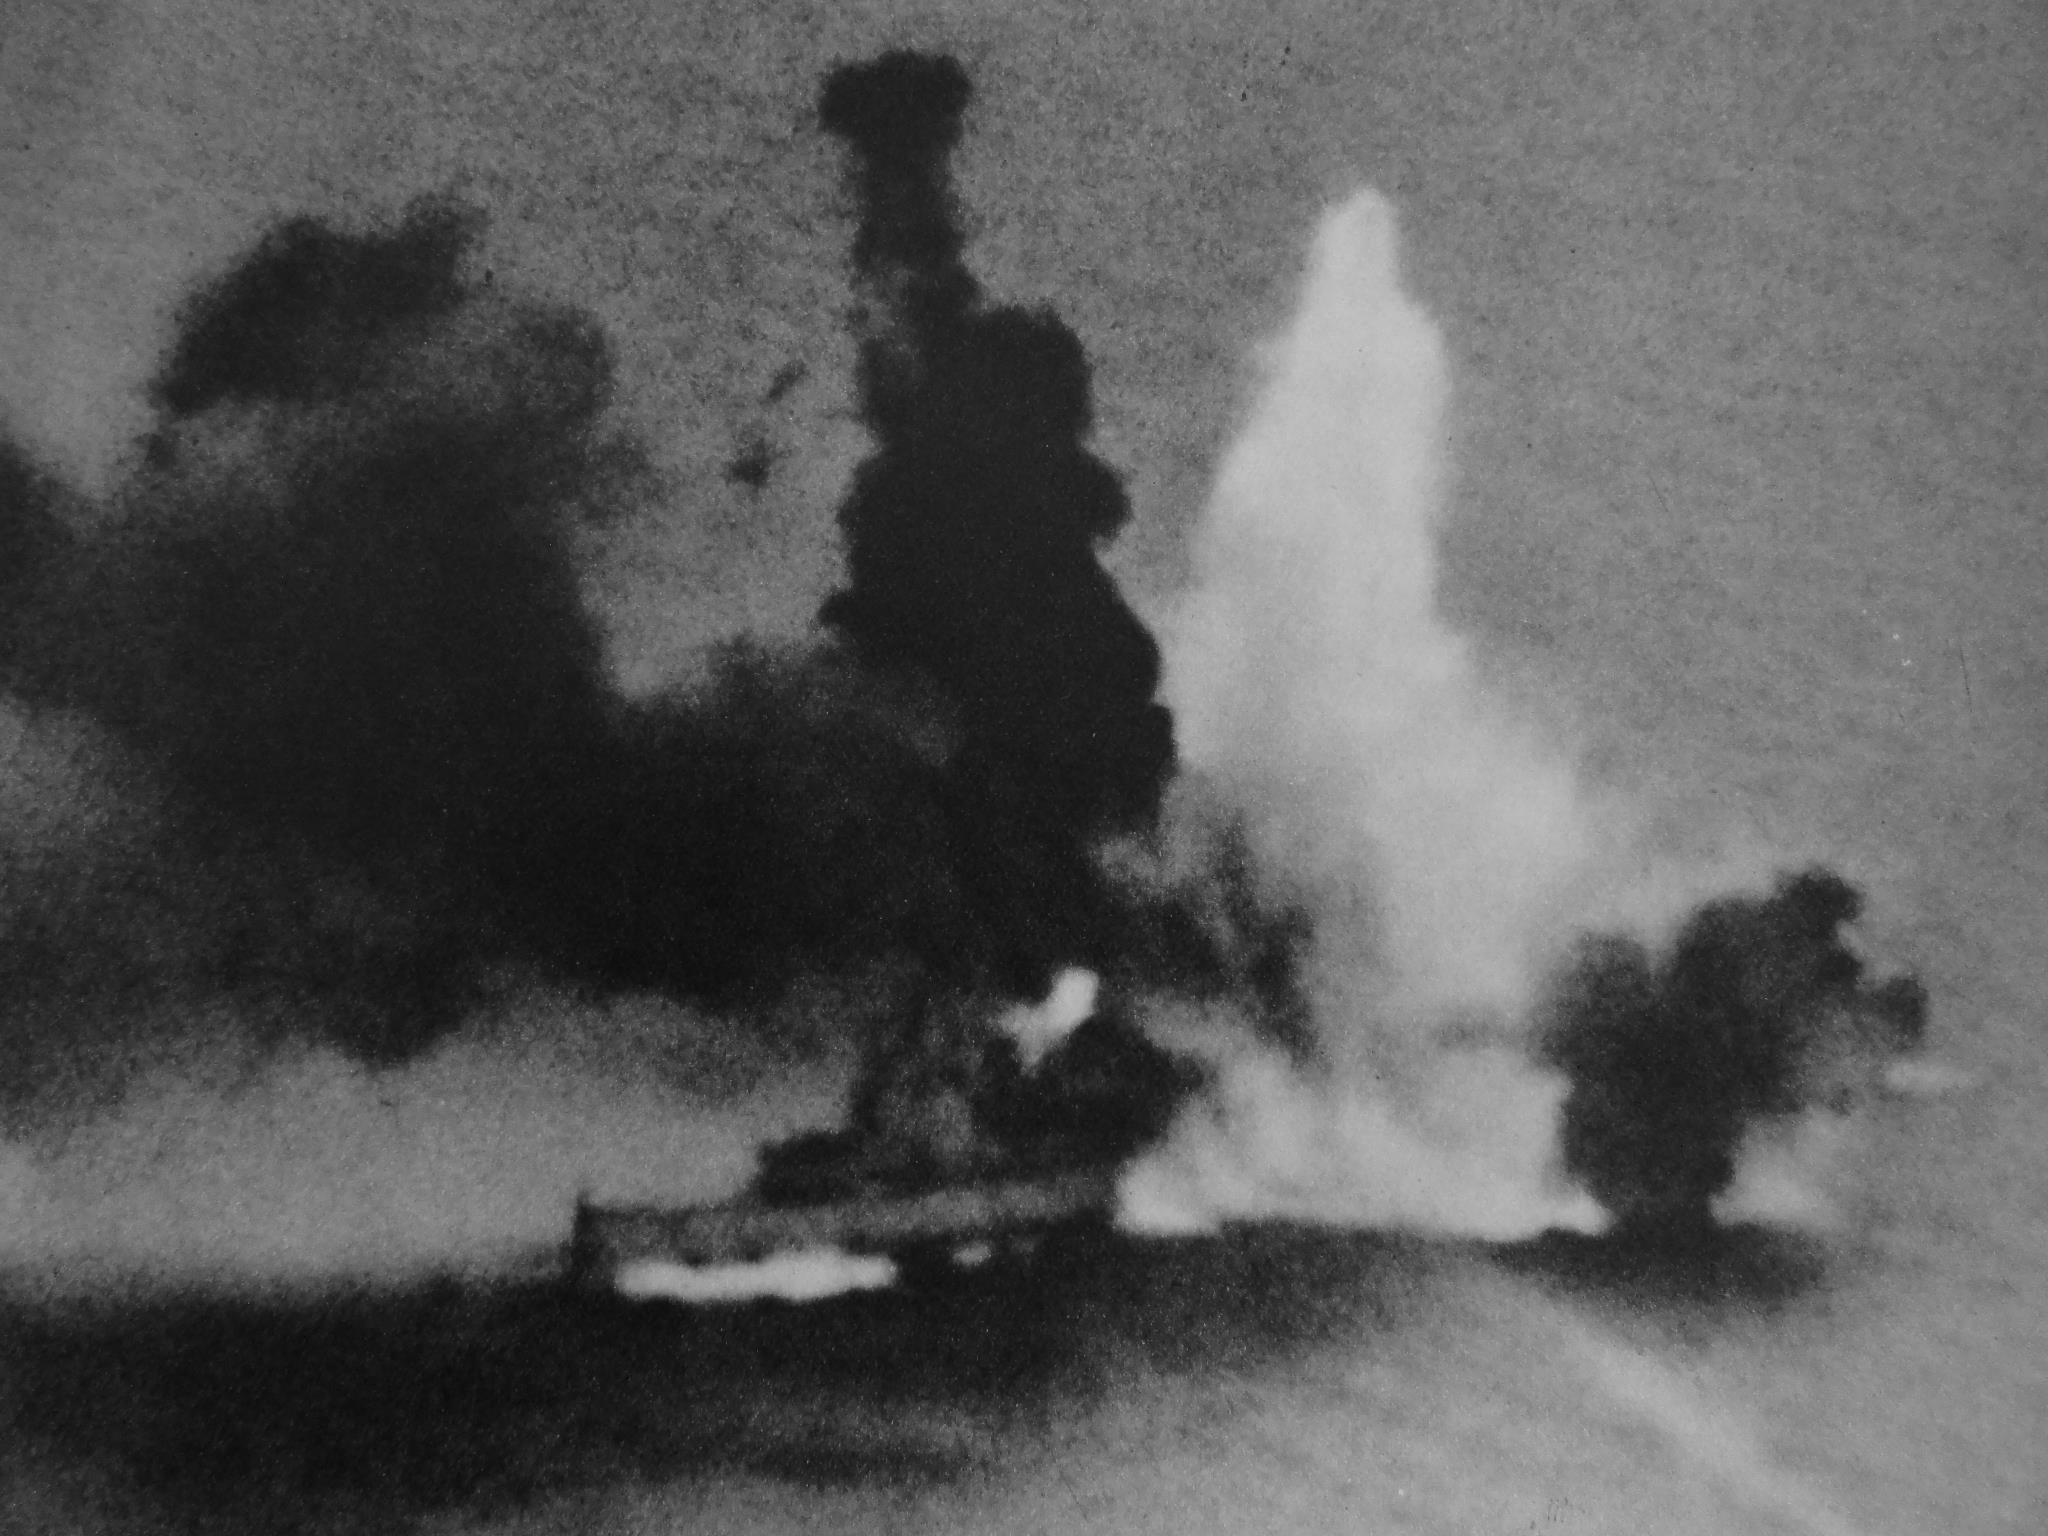 HMS Exeter under attack during the Second Battle of the Java Sea, 1 Mar 1942 (Japanese Navy Photo)